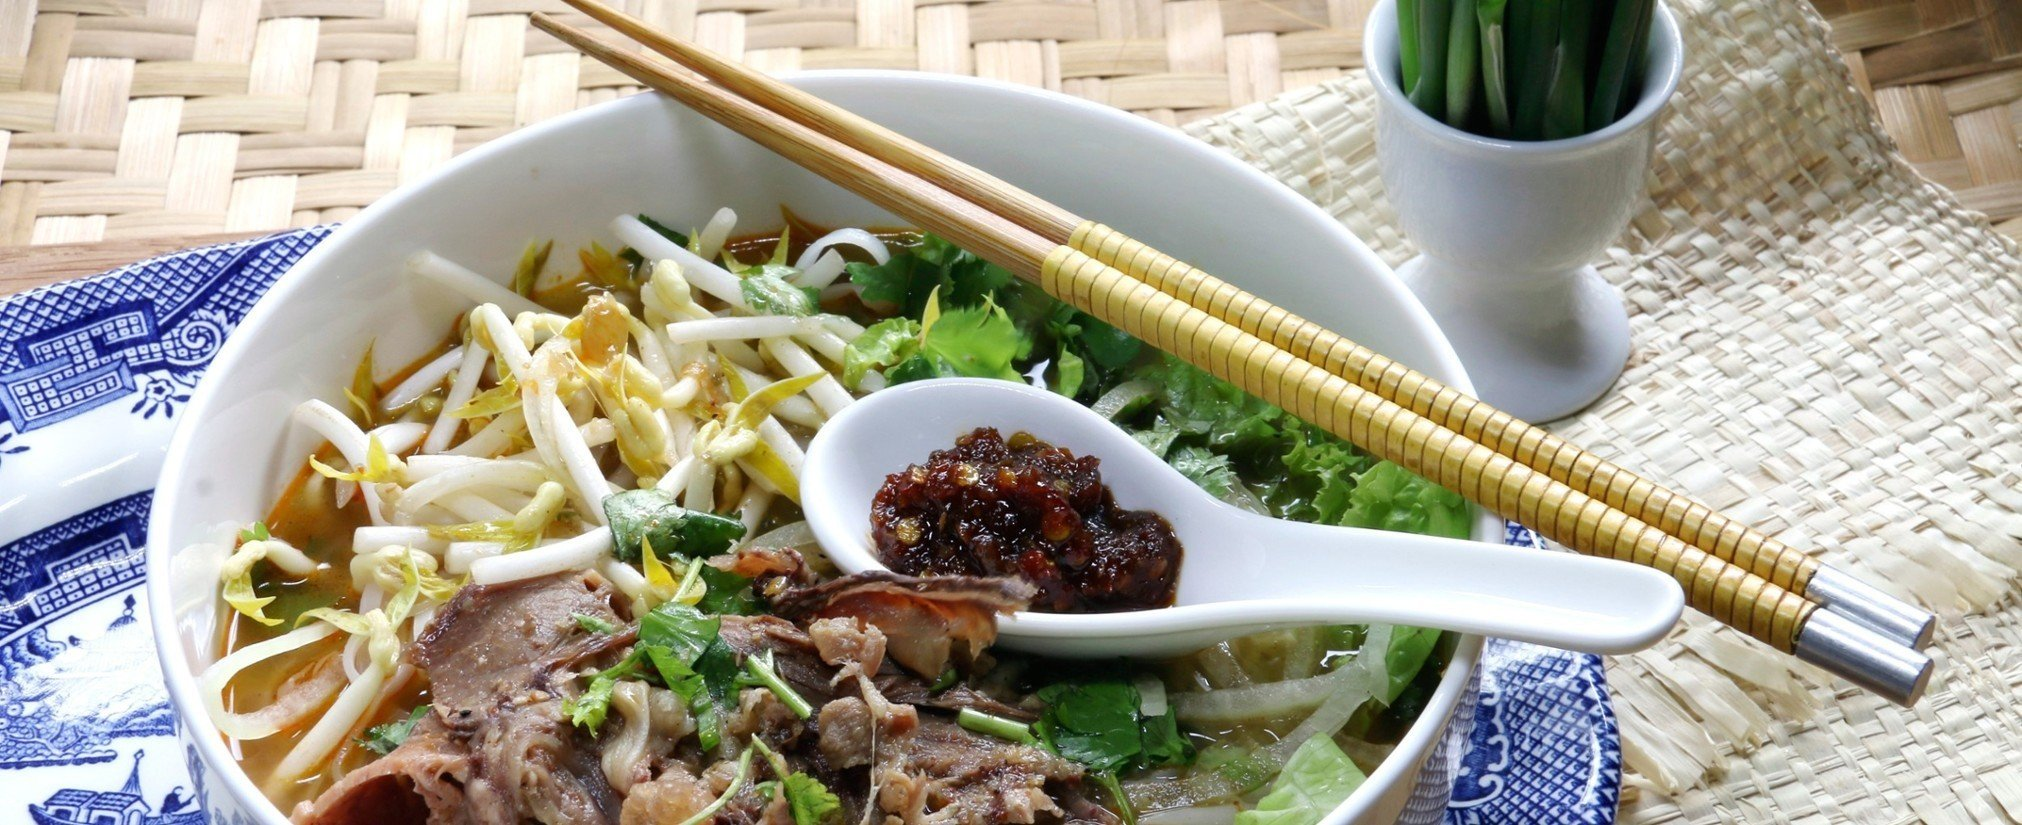 Offbeat food plate table bowl dish cuisine vegetable noodle soup produce meal asian food pho lunch southeast asian food meat